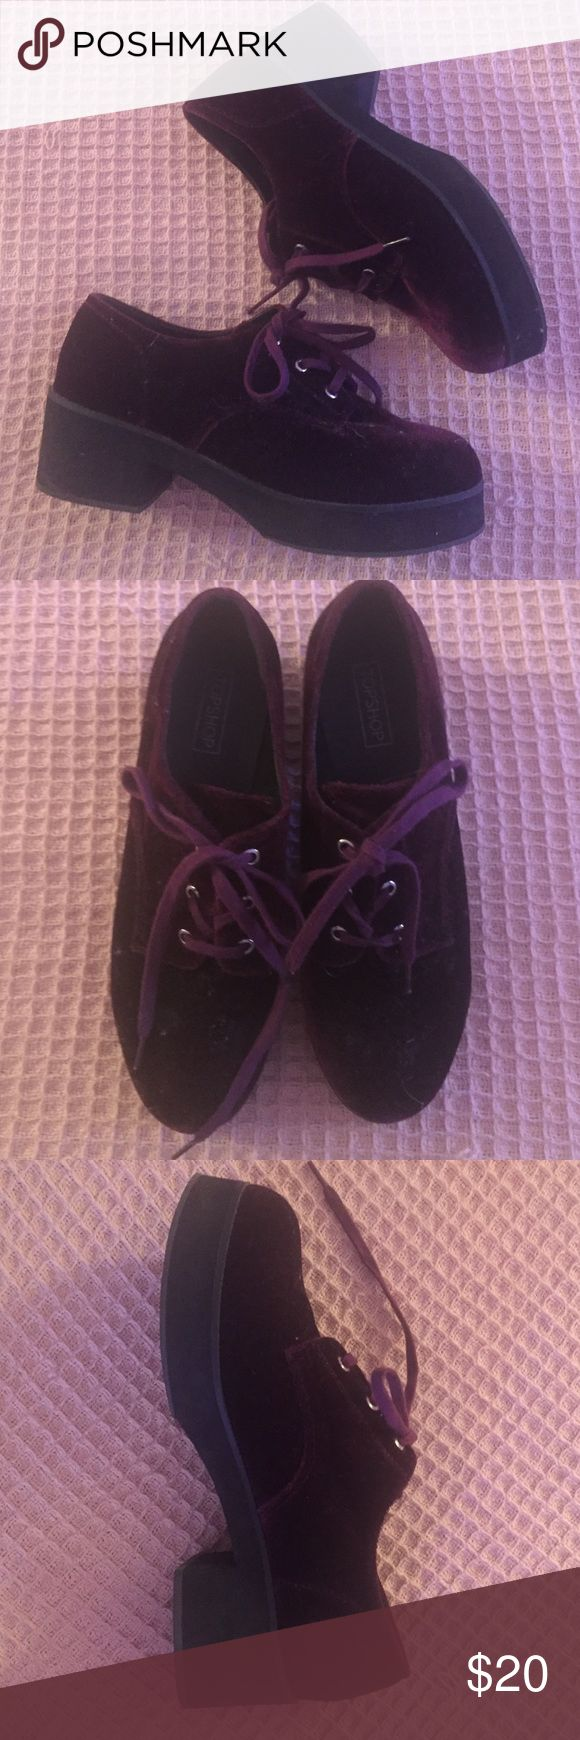 Dark Purple Velvet TopShop Shoes Perfect condition :) Topshop Shoes Flats & Loafers